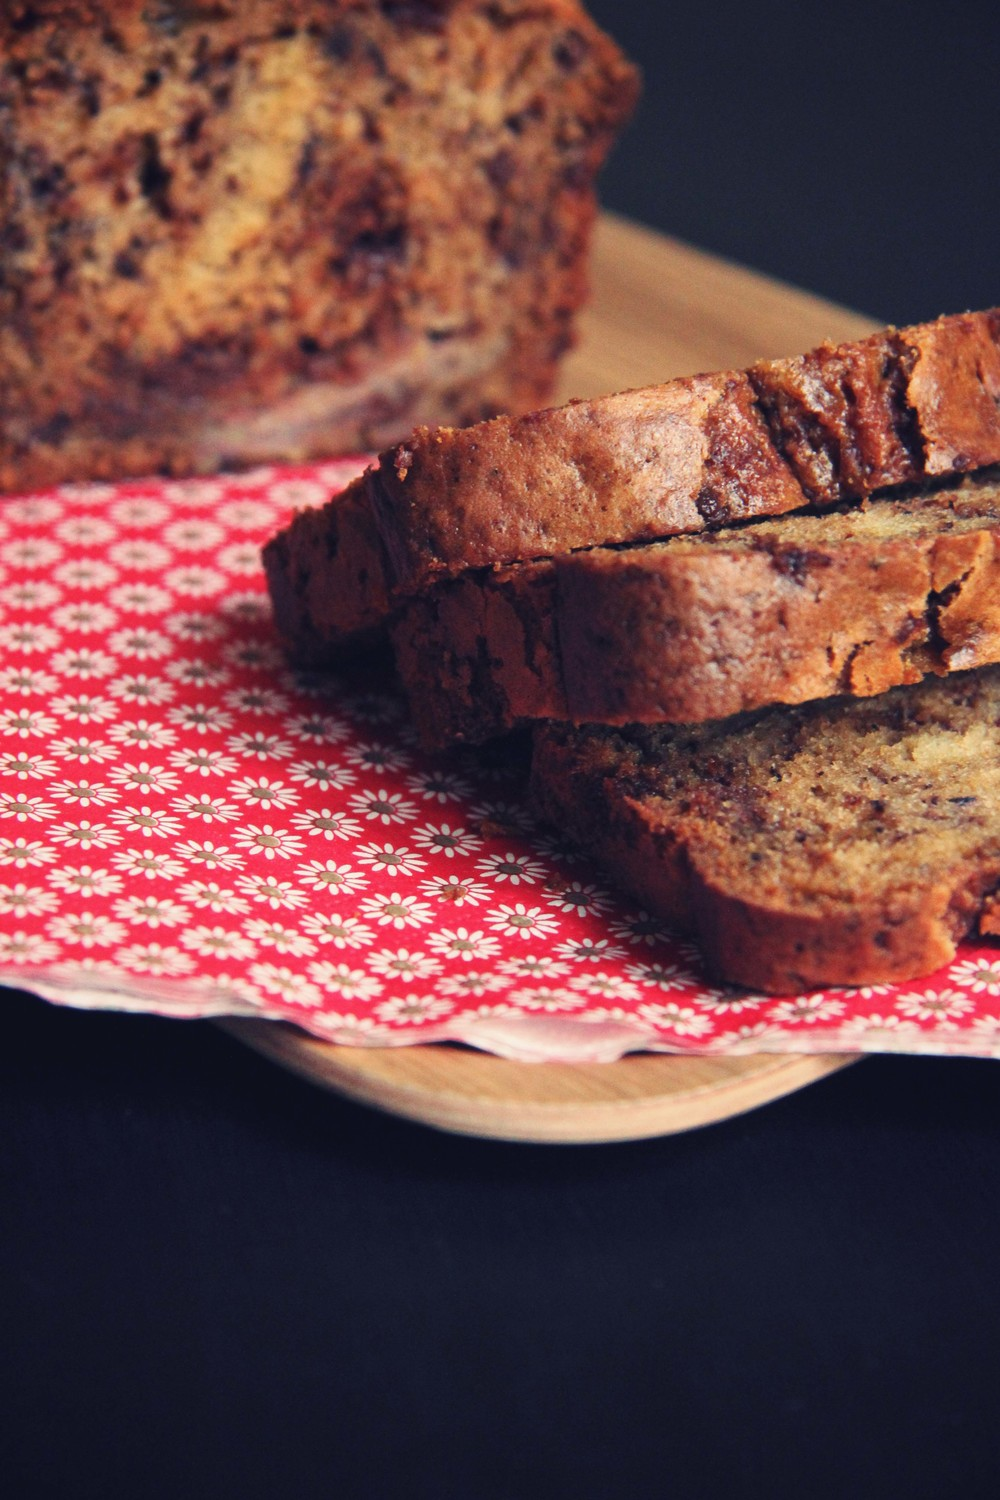 Banana Bread aux pépites de chocolat - The Flying Flour // www.theflyingflour.com